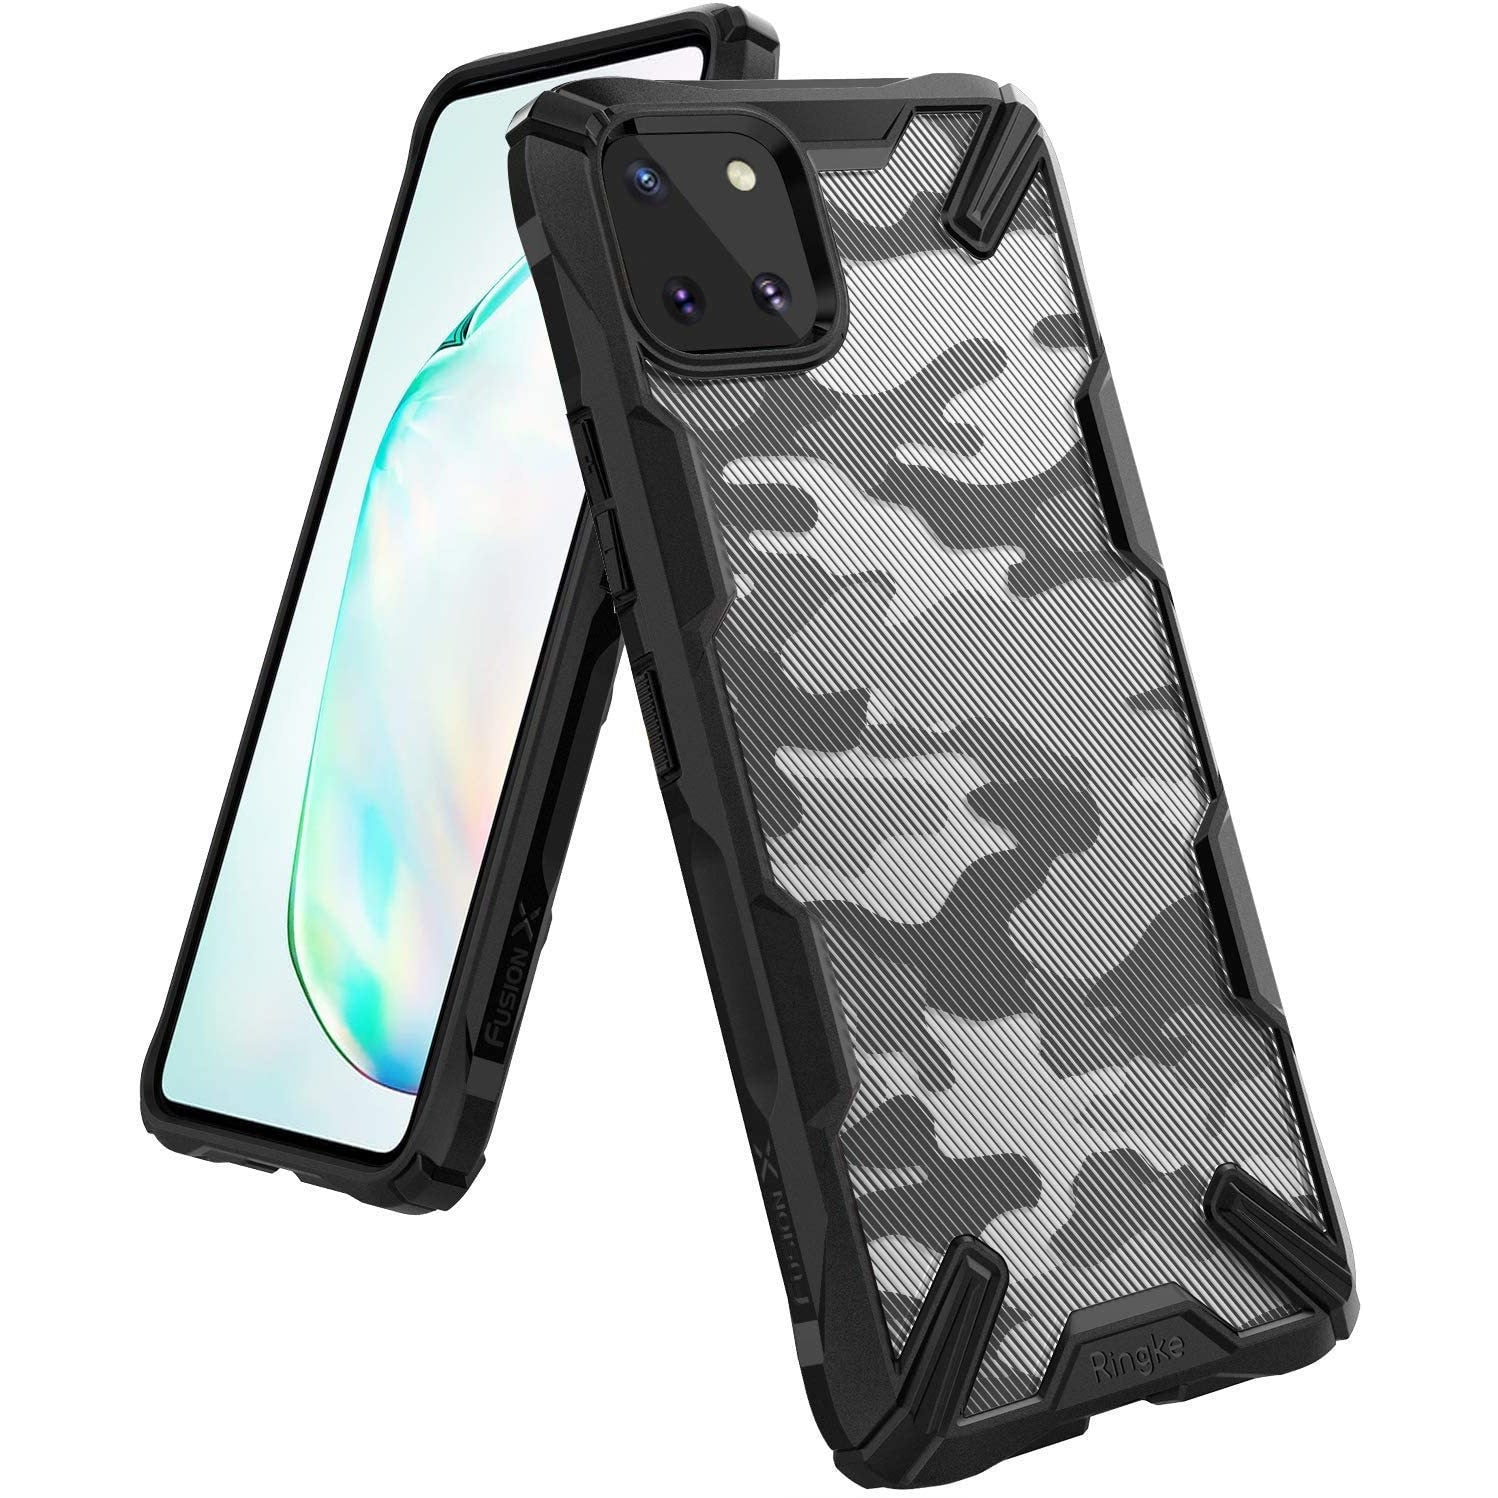 Ringke Fusion X Design Case Made for Galaxy Note 10 Lite (2020) - Camo Black